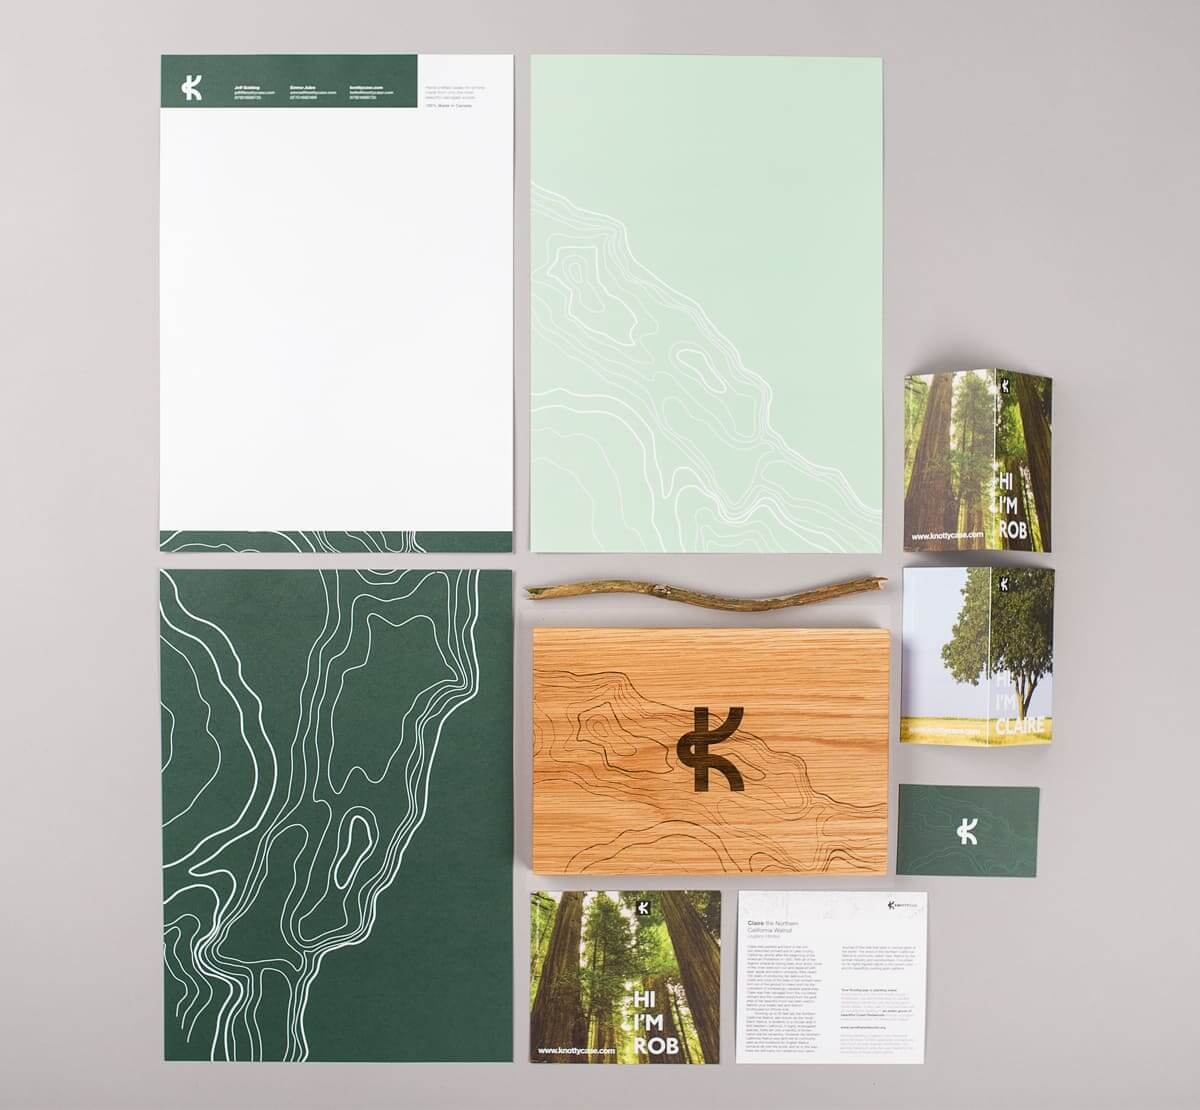 knotty case brand identity design